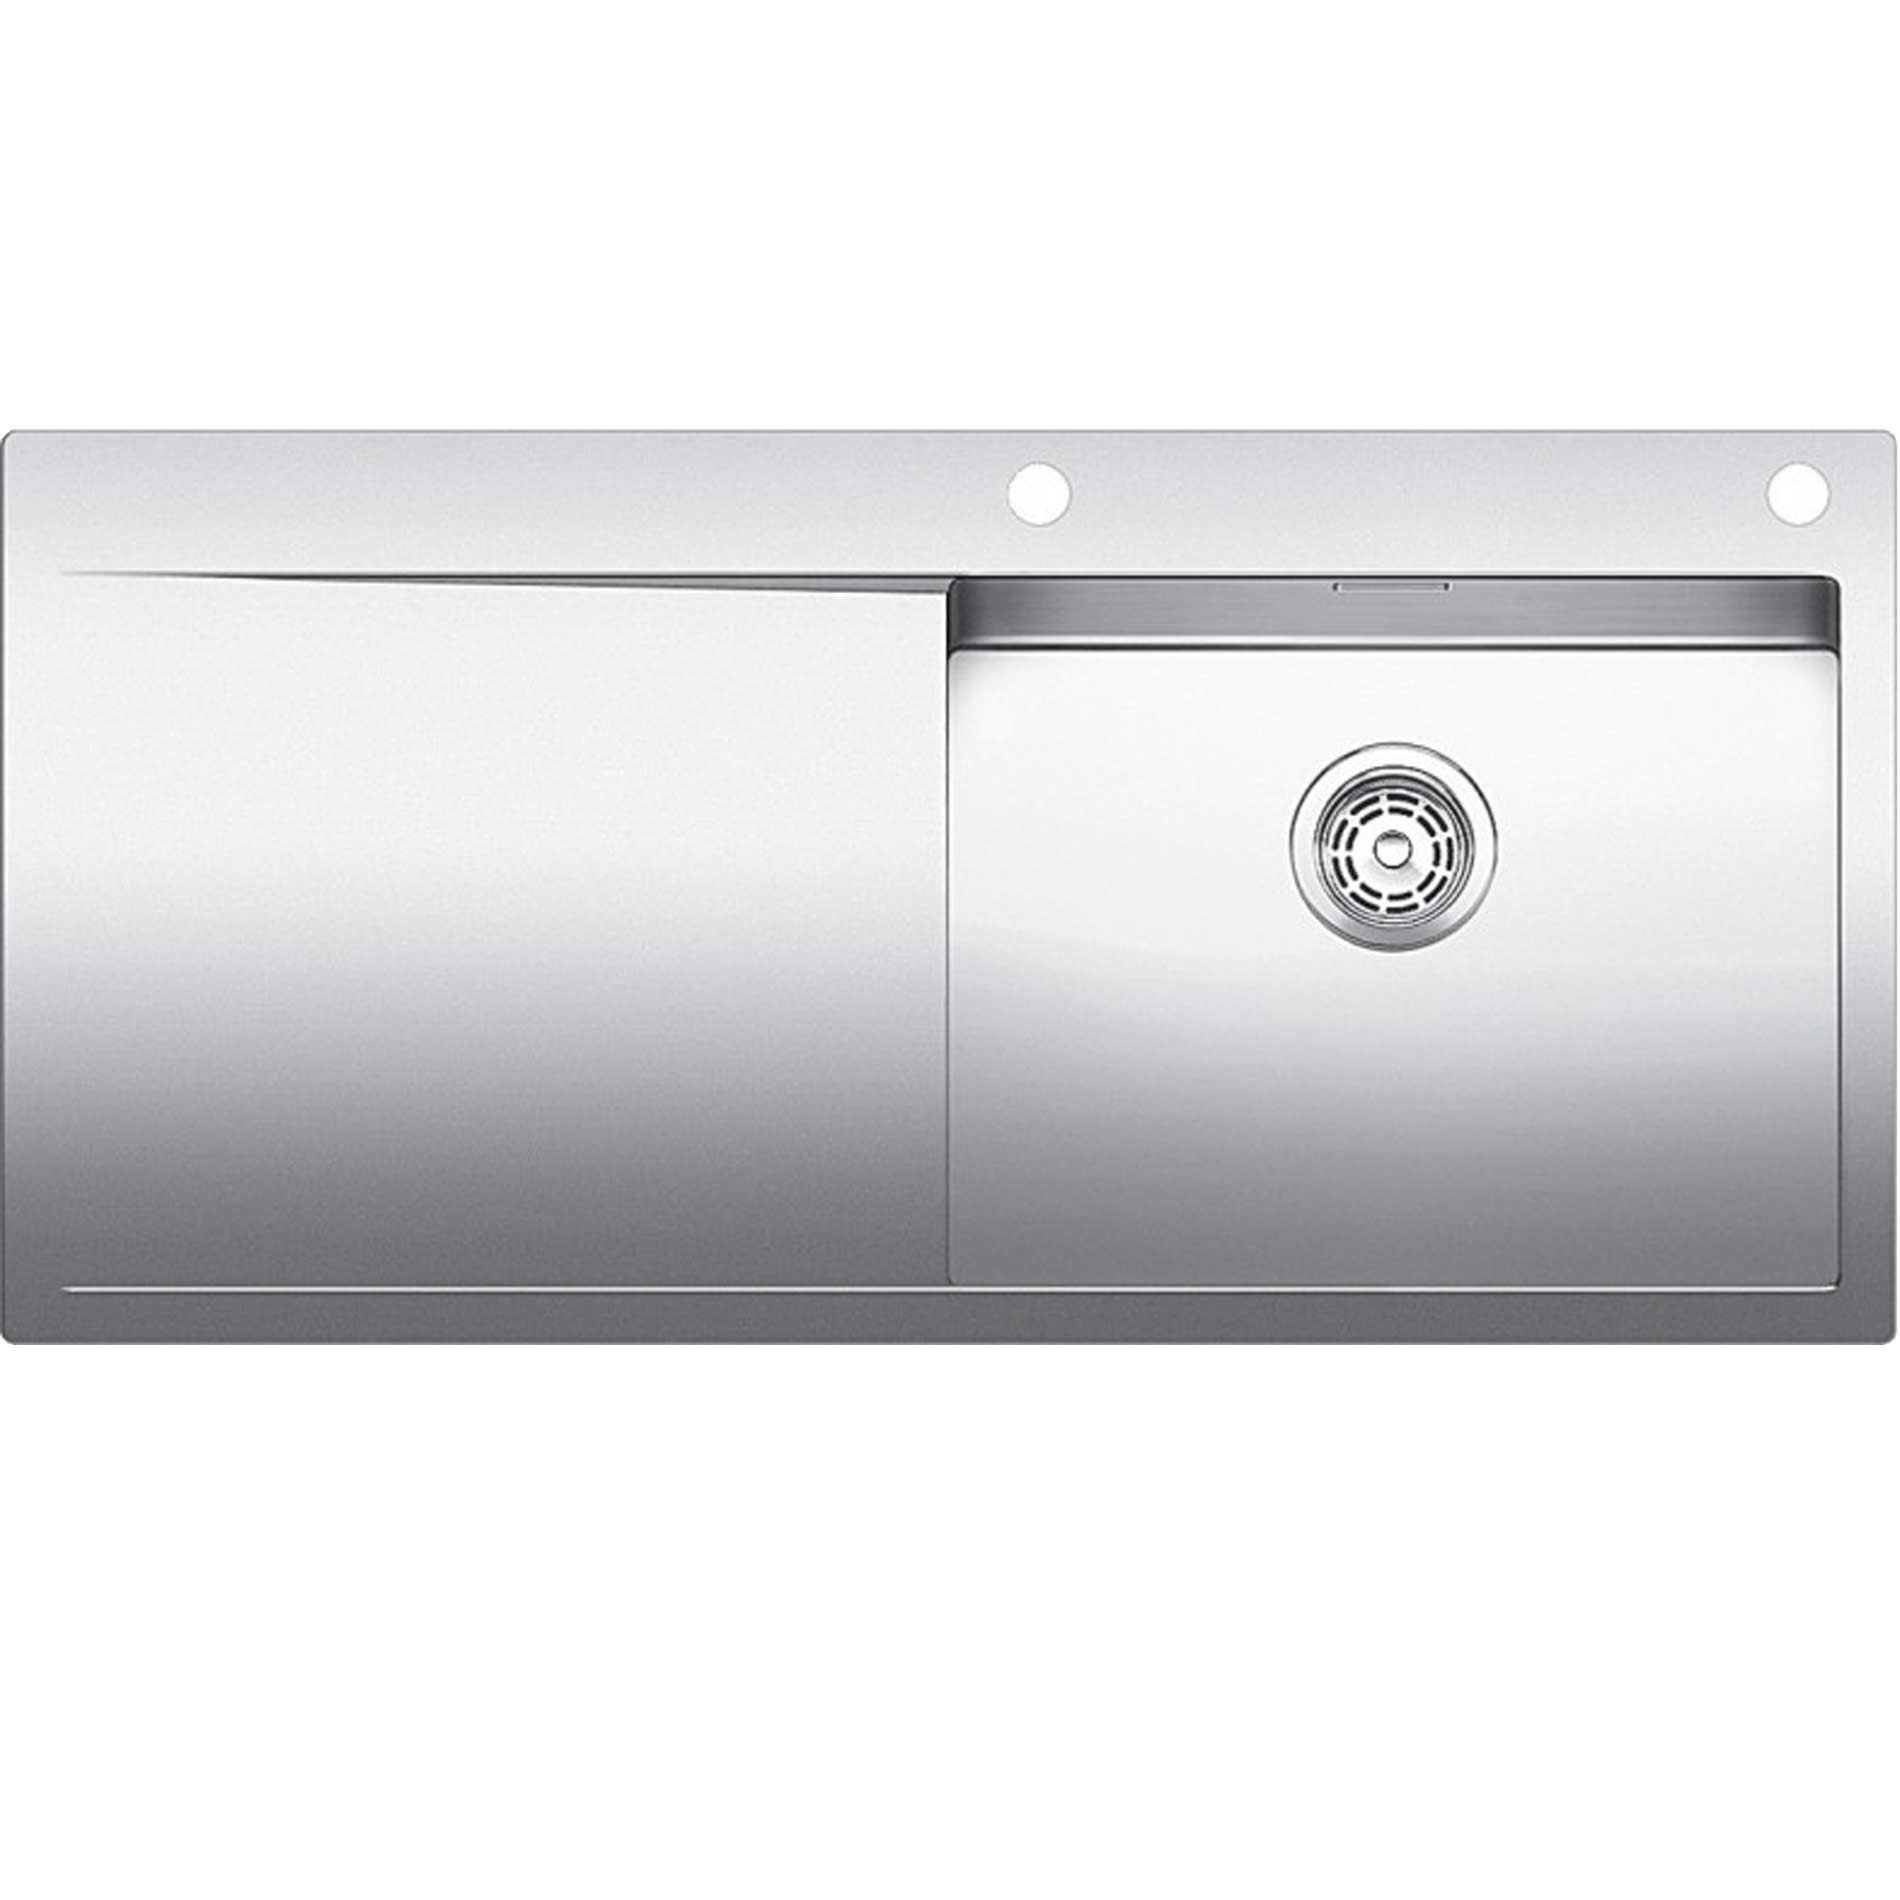 Etonnant Picture Of Flow XL 6 S IF Stainless Steel Sink